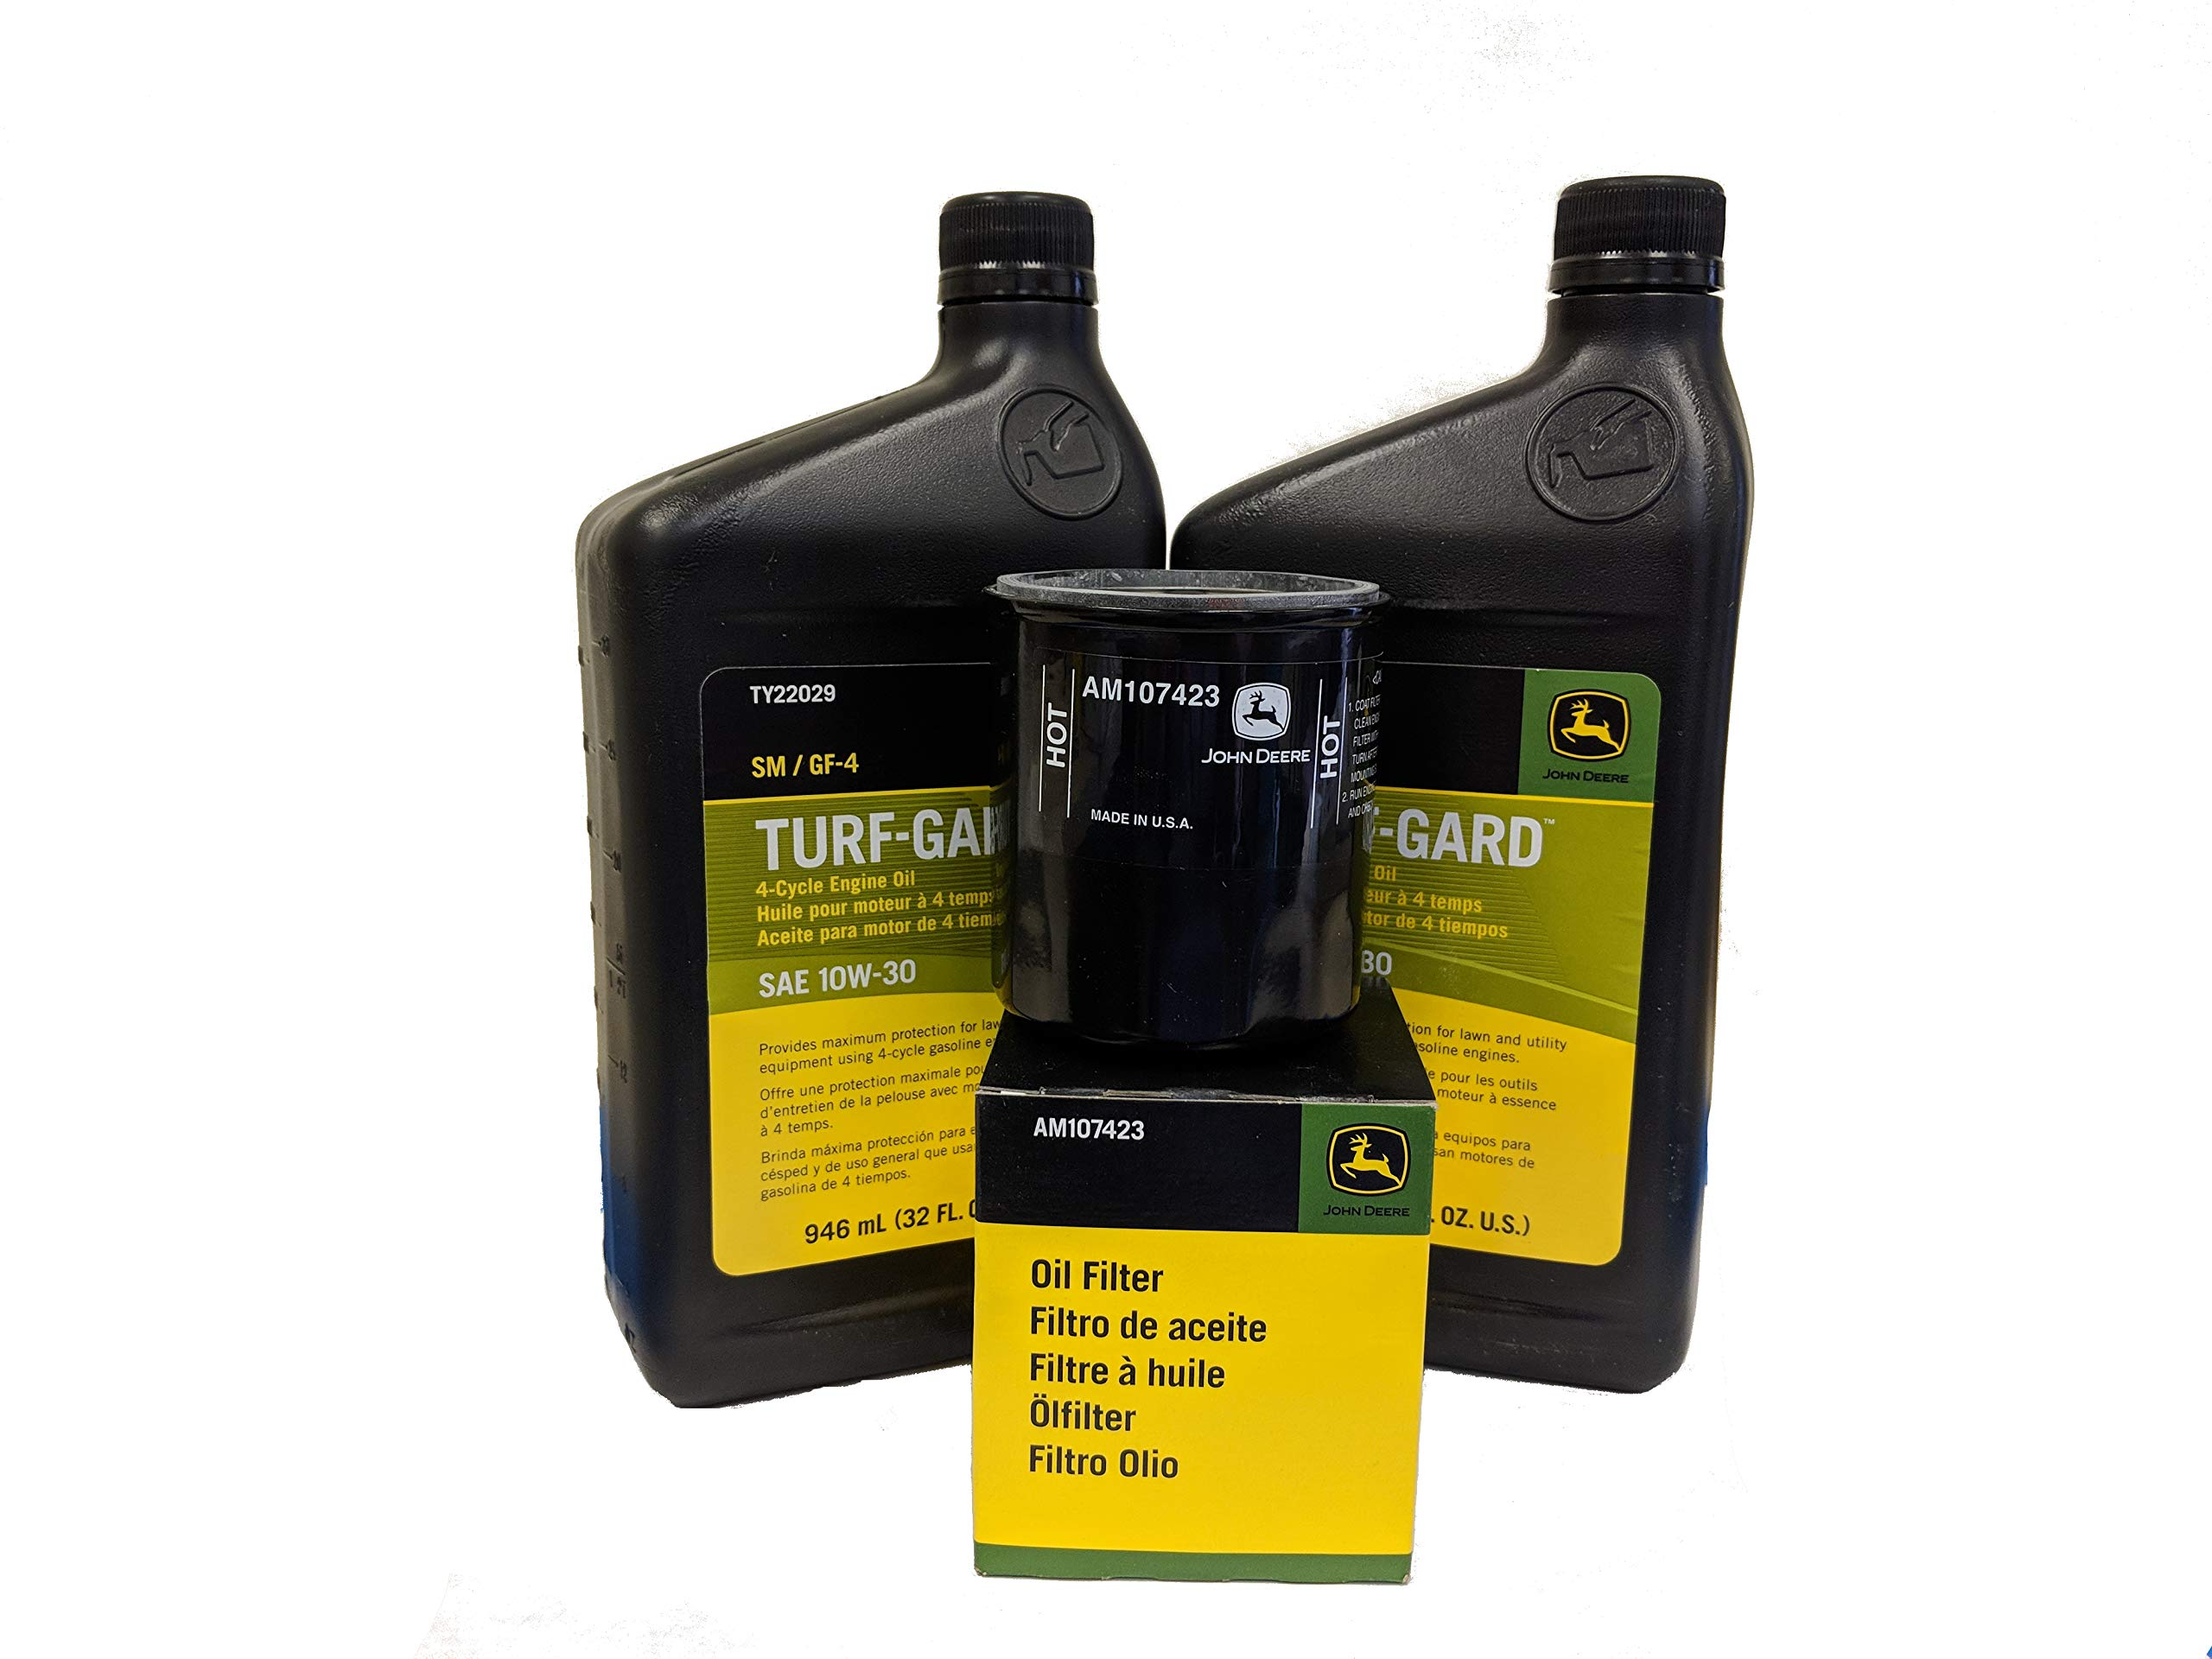 J0HN DEERE 2 Quarts Turf-Gard SAE 10W-30 Oil Plus AM107423 Filter. Fits Many Lawn Mowers - Check Description by John Deere